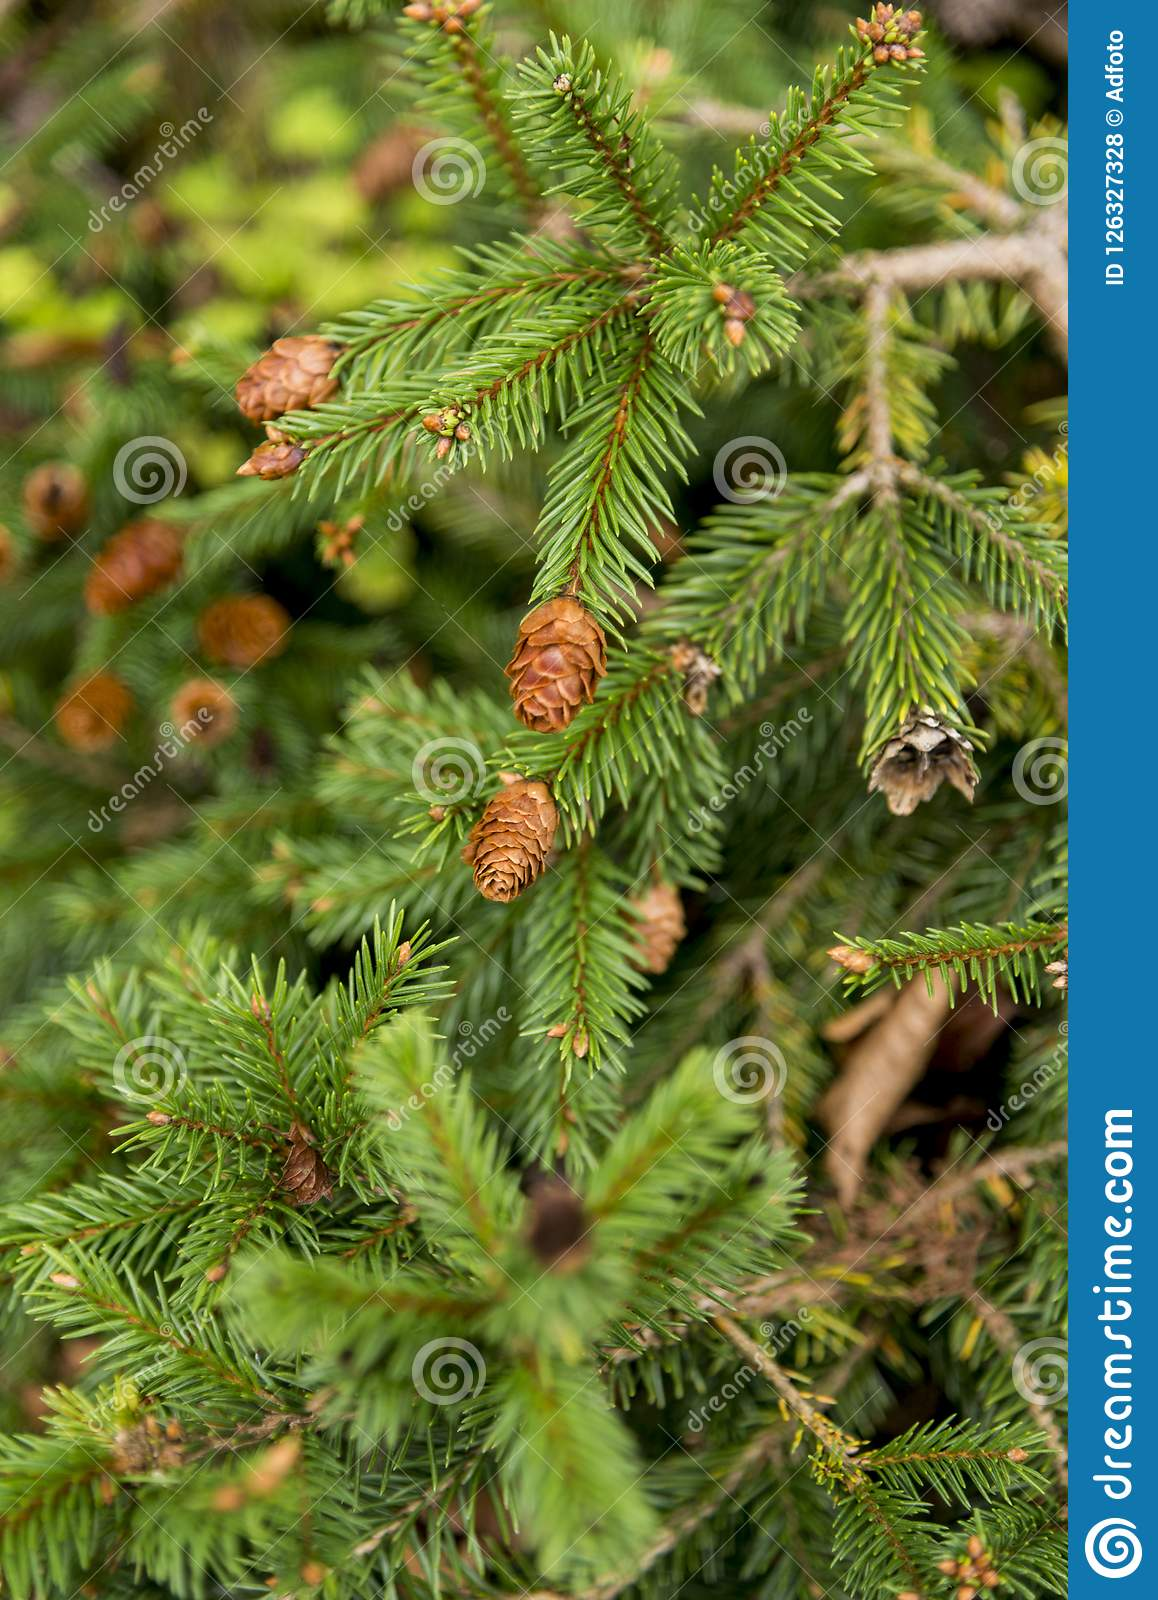 Picea Abies Pusch The Norway Spruce Stock Photo Image Of